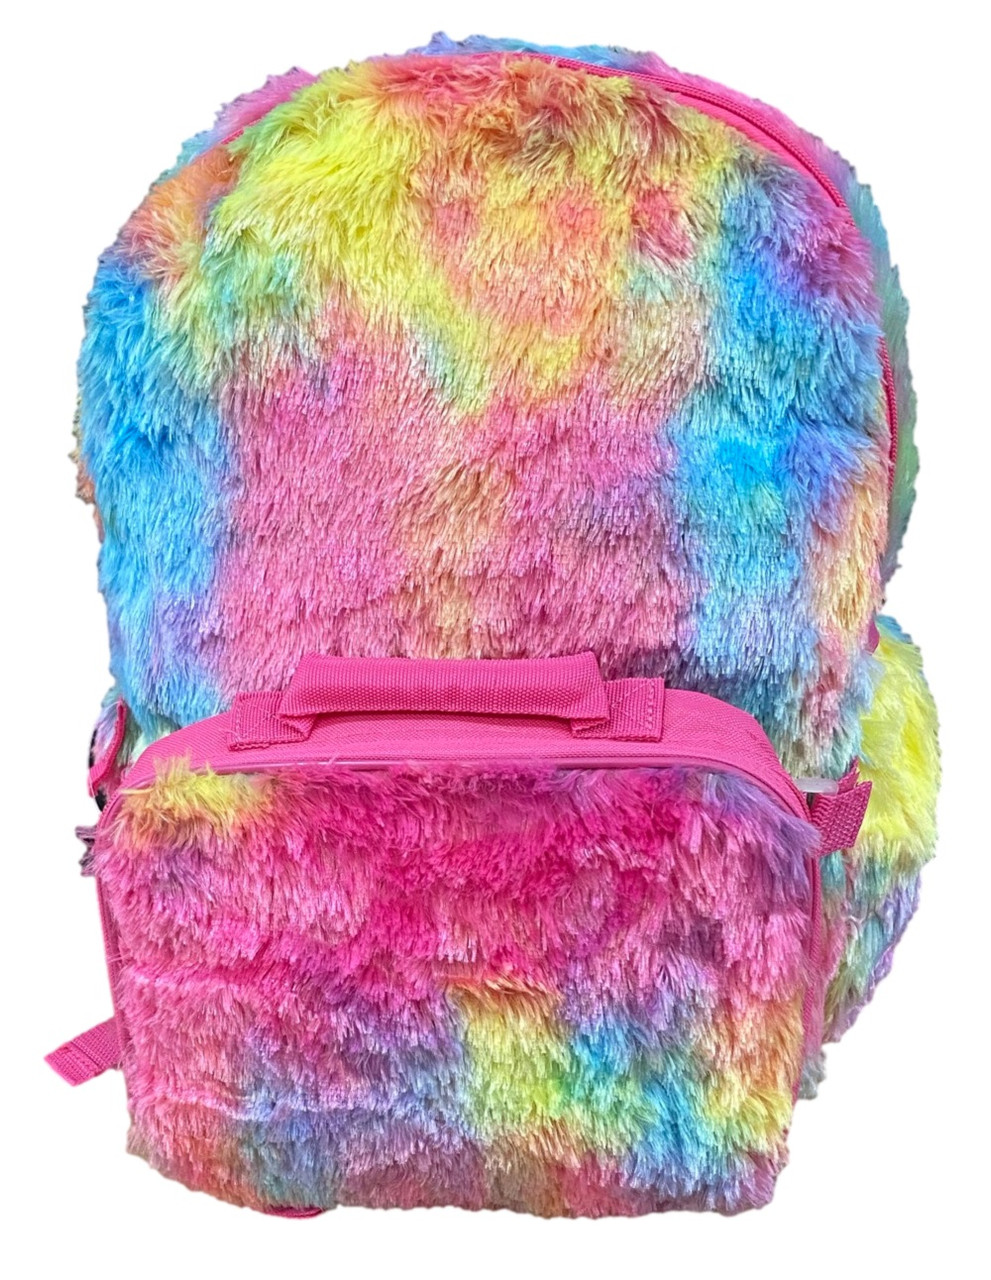 Rainbow Colored Backpack w Lunch Box - Large 16 Inch